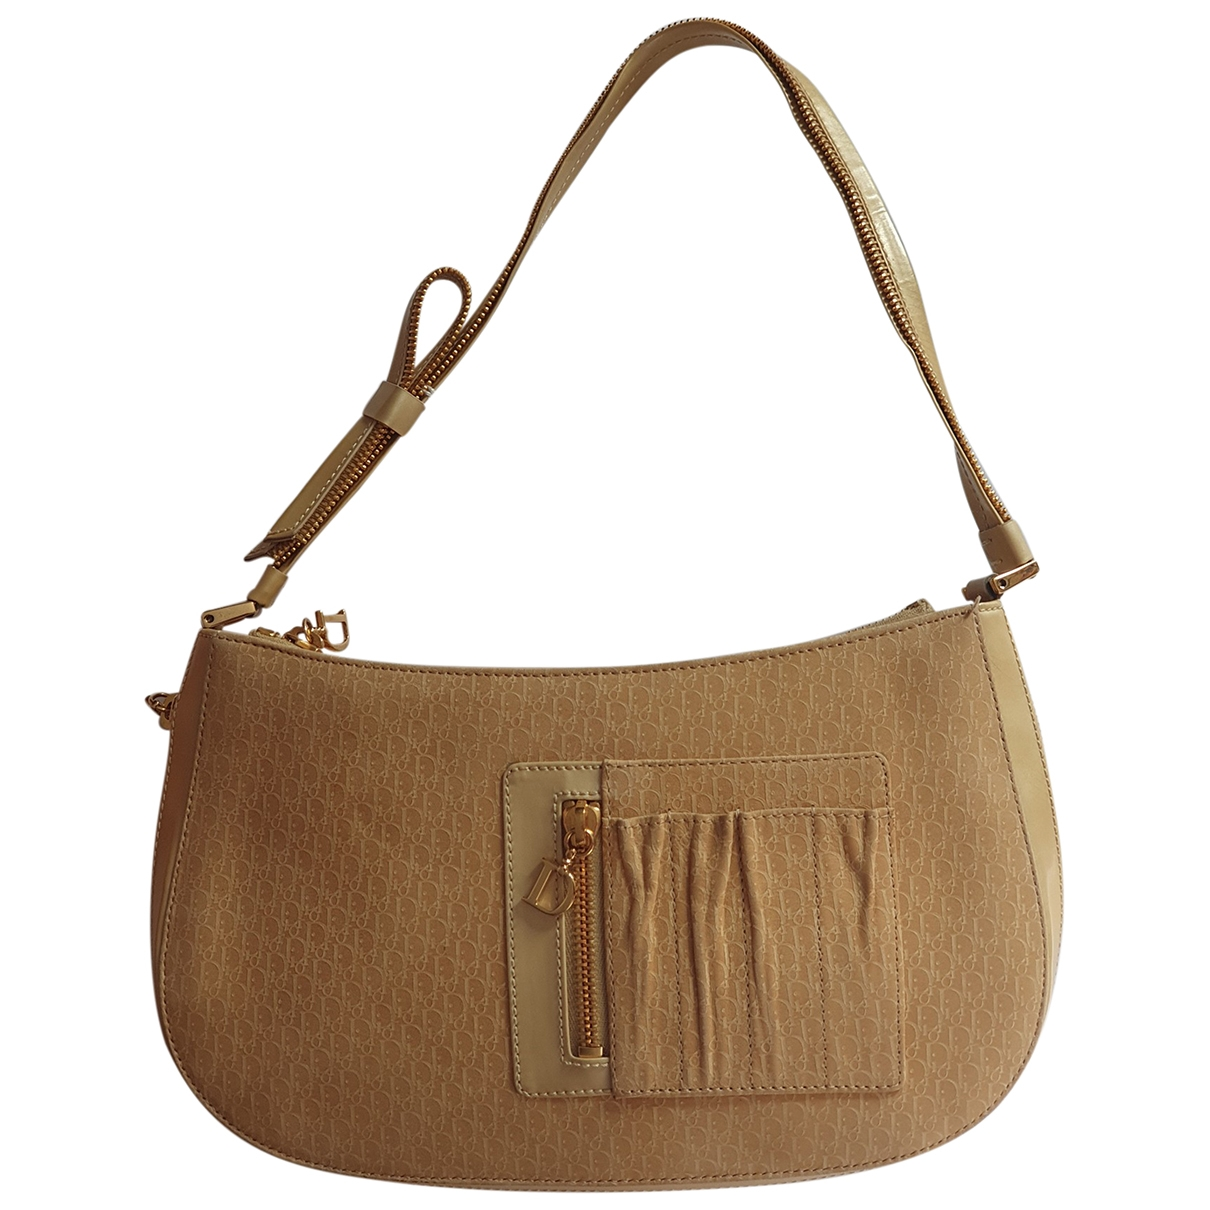 Dior \N Beige Cloth handbag for Women \N